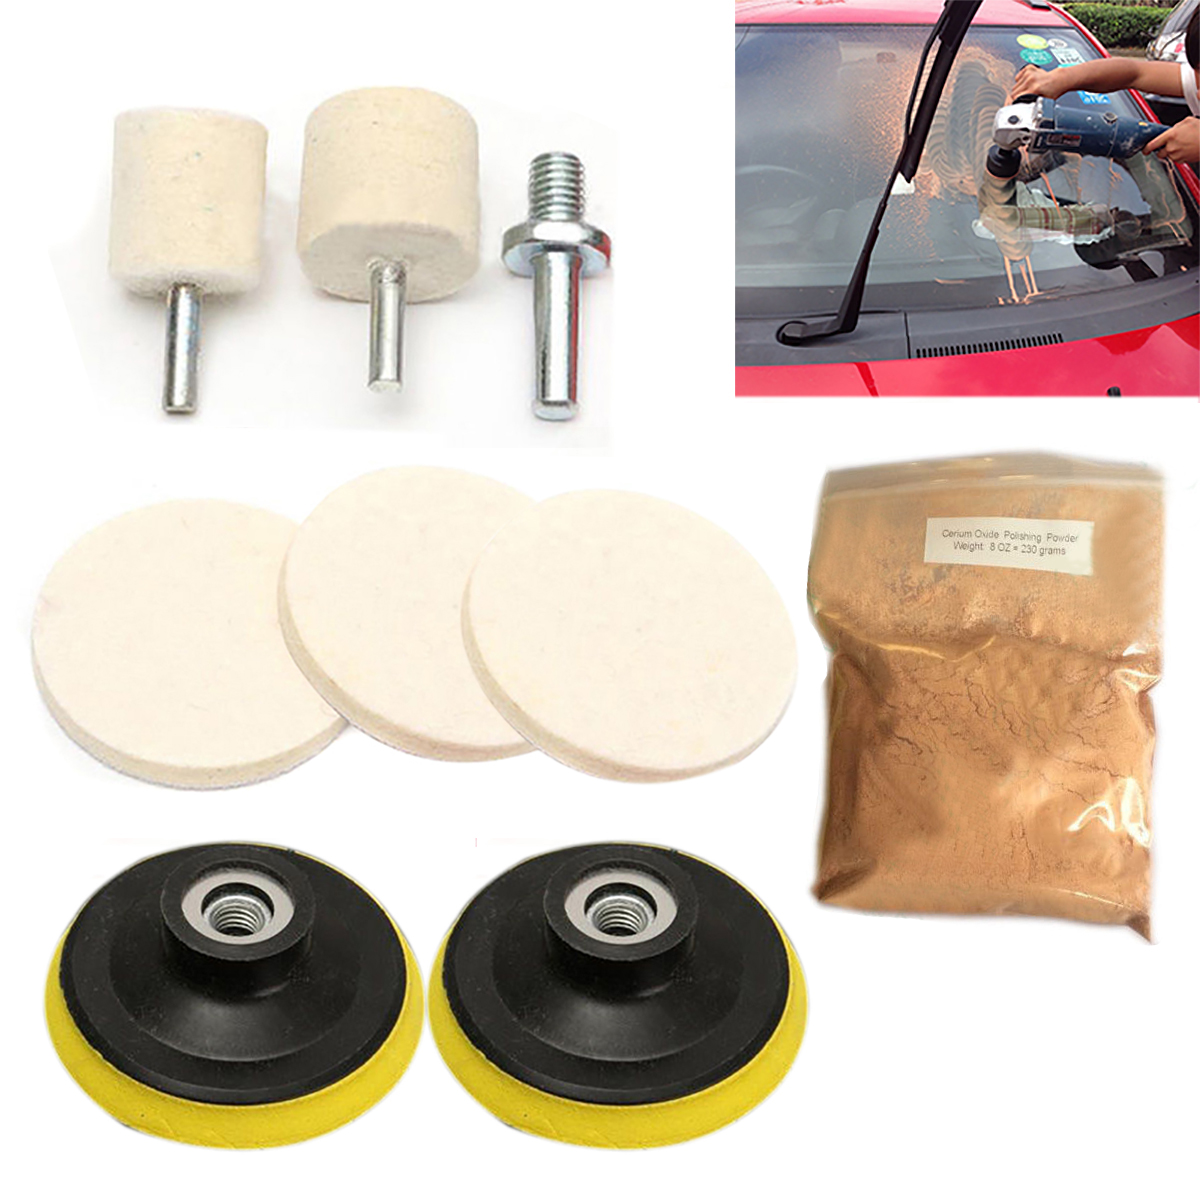 100g Ossieao Cerium Oxide Glass Polishing Kit Windscreen Scratch Remover Felt 3 Pad